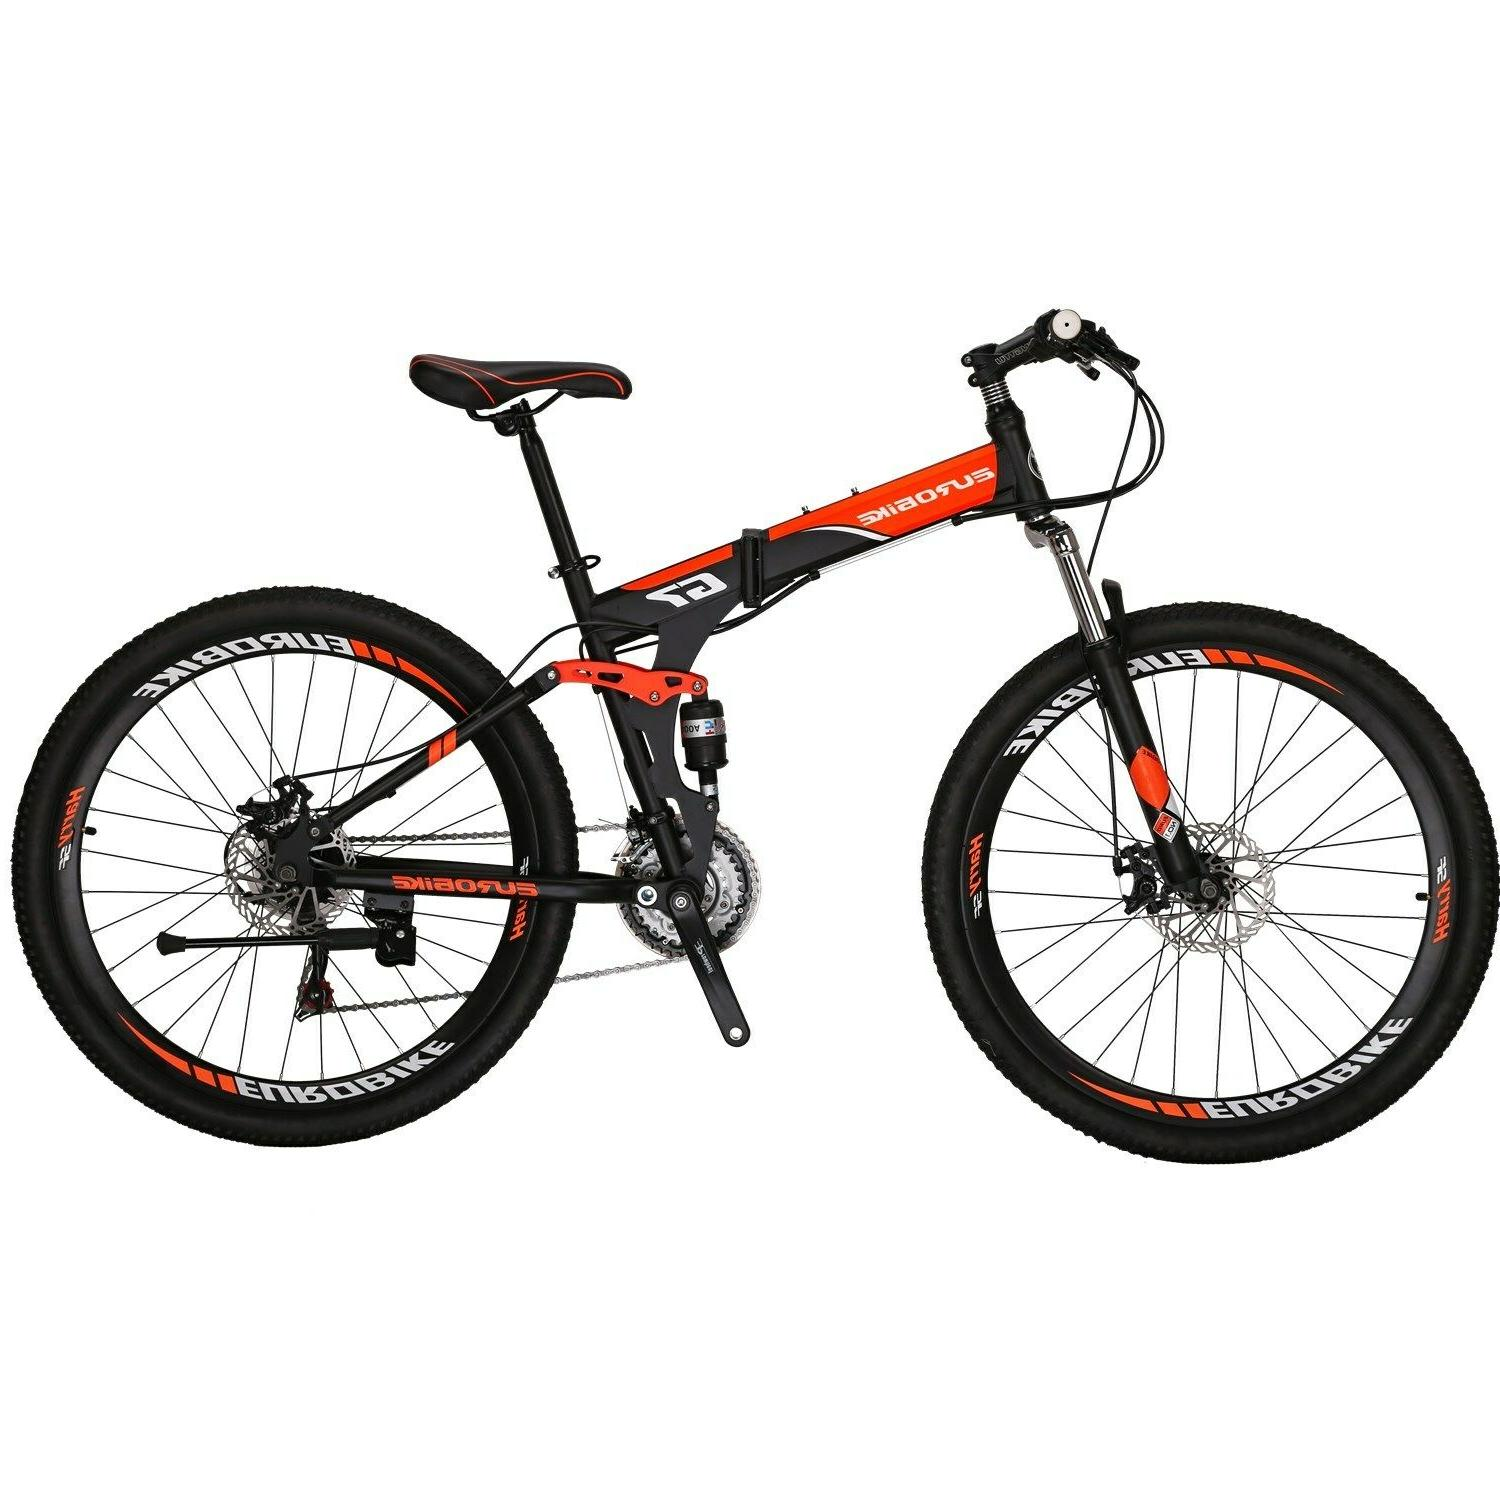 "27.5"" 21 Mens Bicycle"